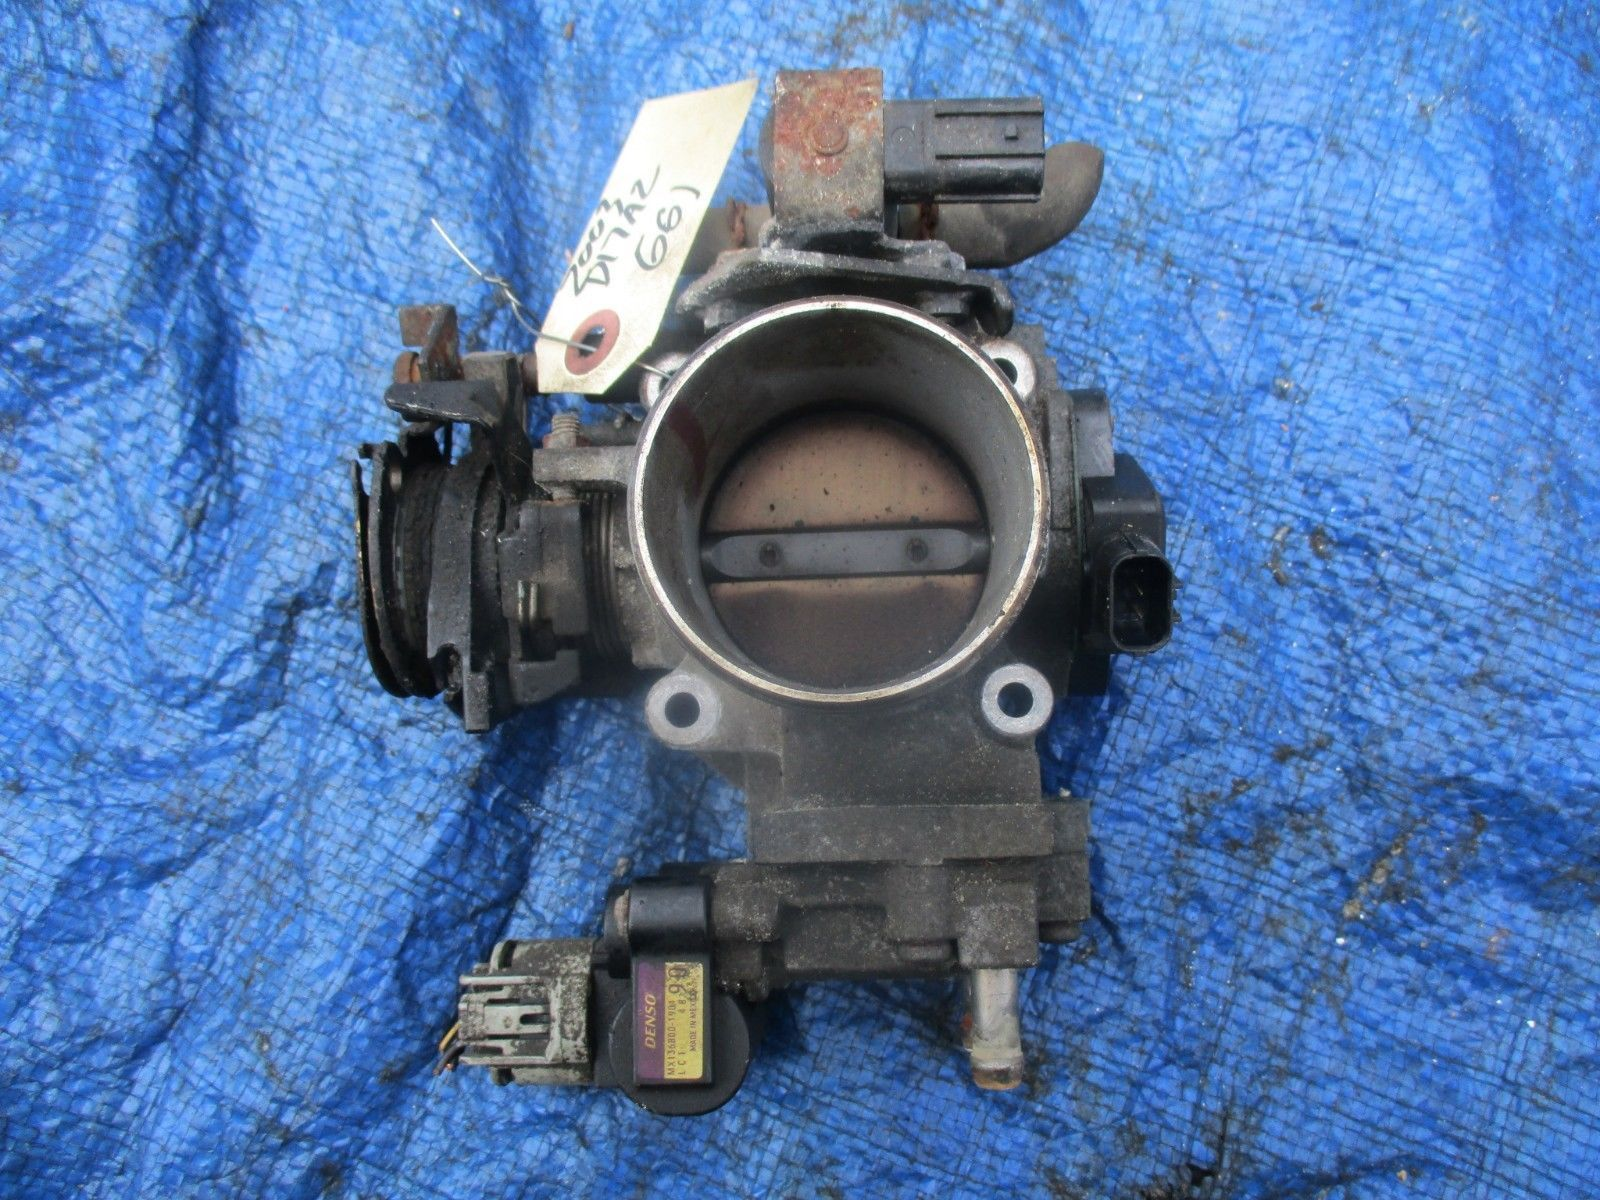 01-05 Honda Civic D17A2 VTEC throttle body engine motor D17 D17A1 SOHC OEM TPS